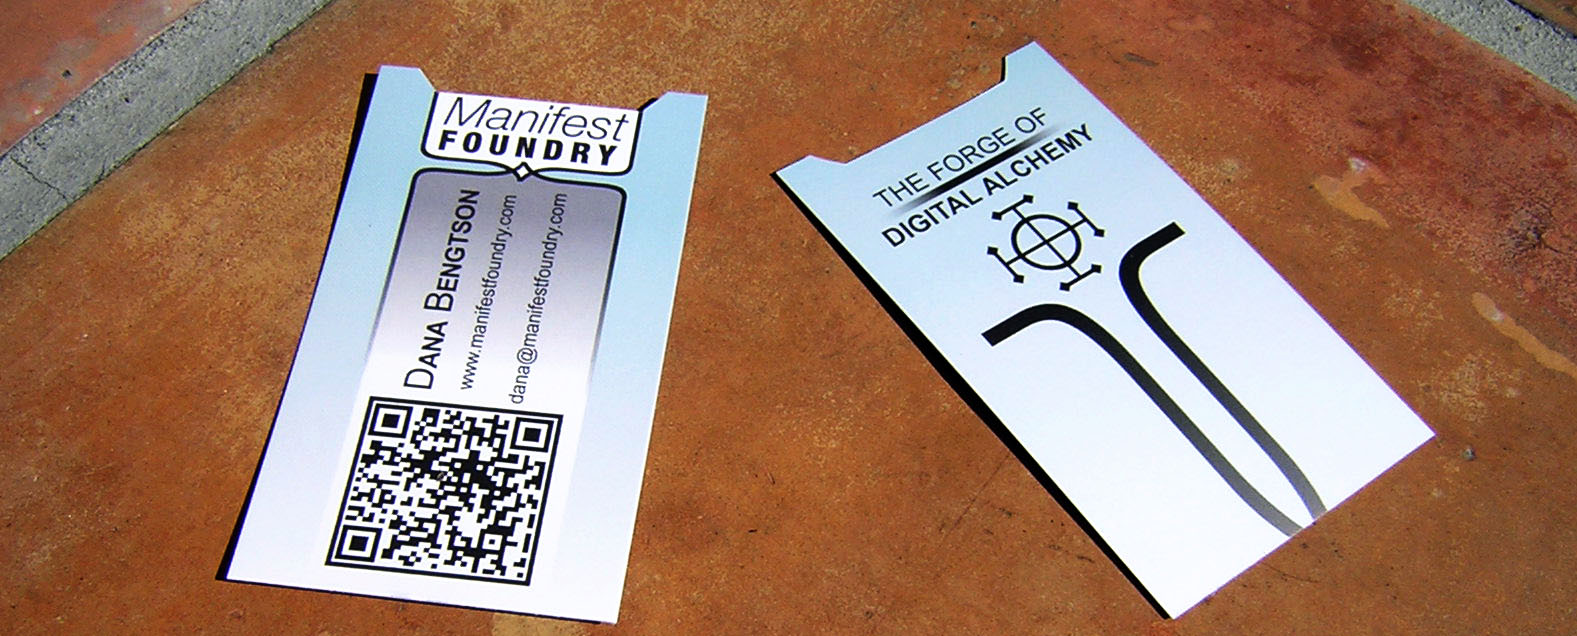 Manifest Foundry Business Cards